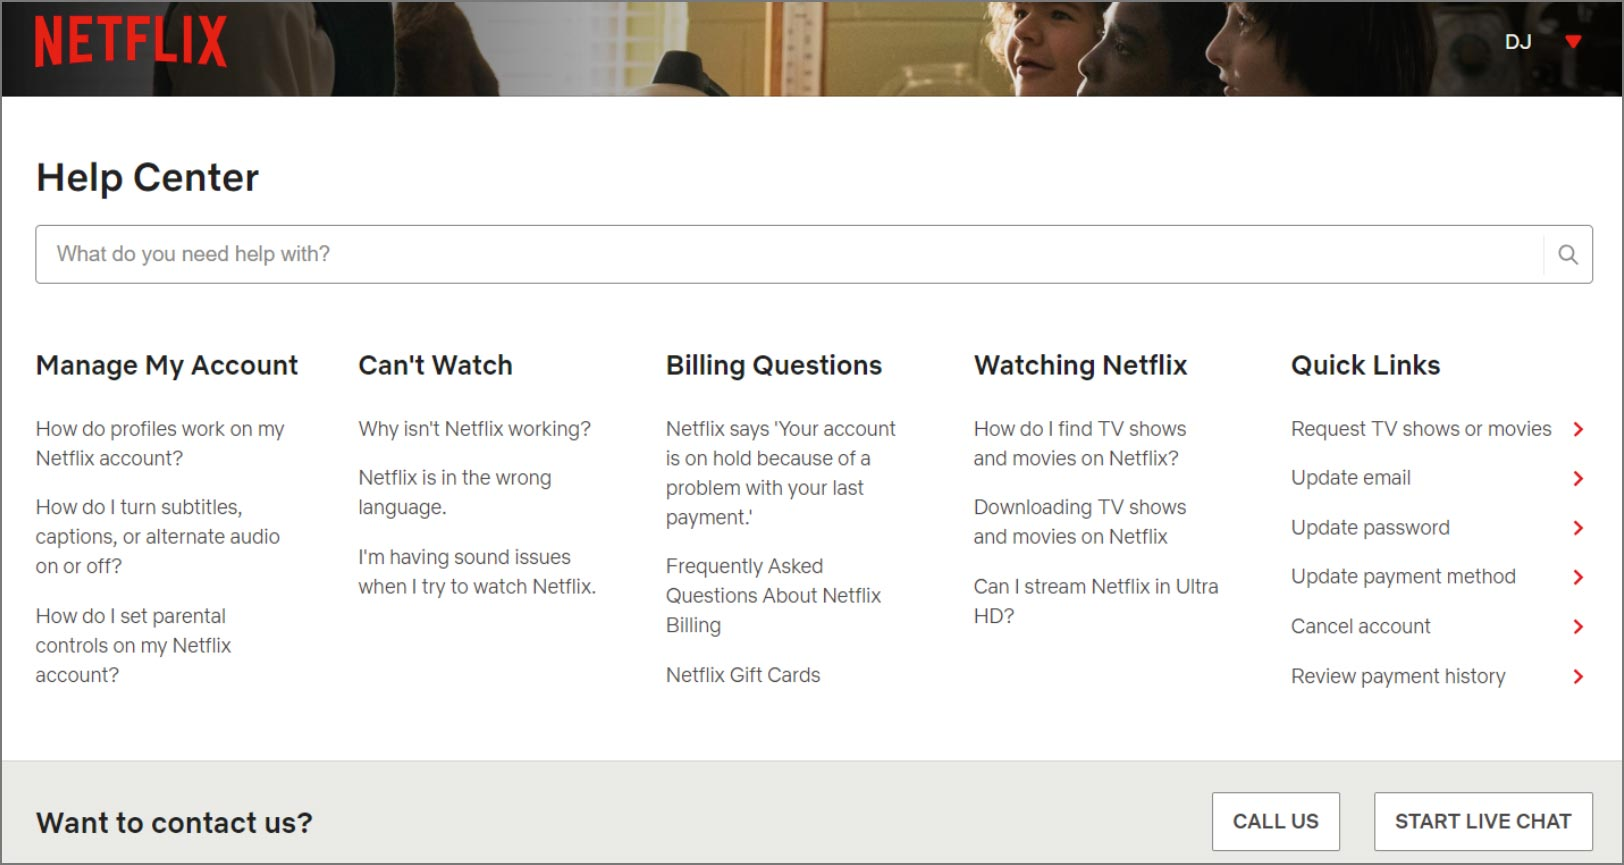 What Banks & Credit Unions Can Learn From Netflix About Digital Support